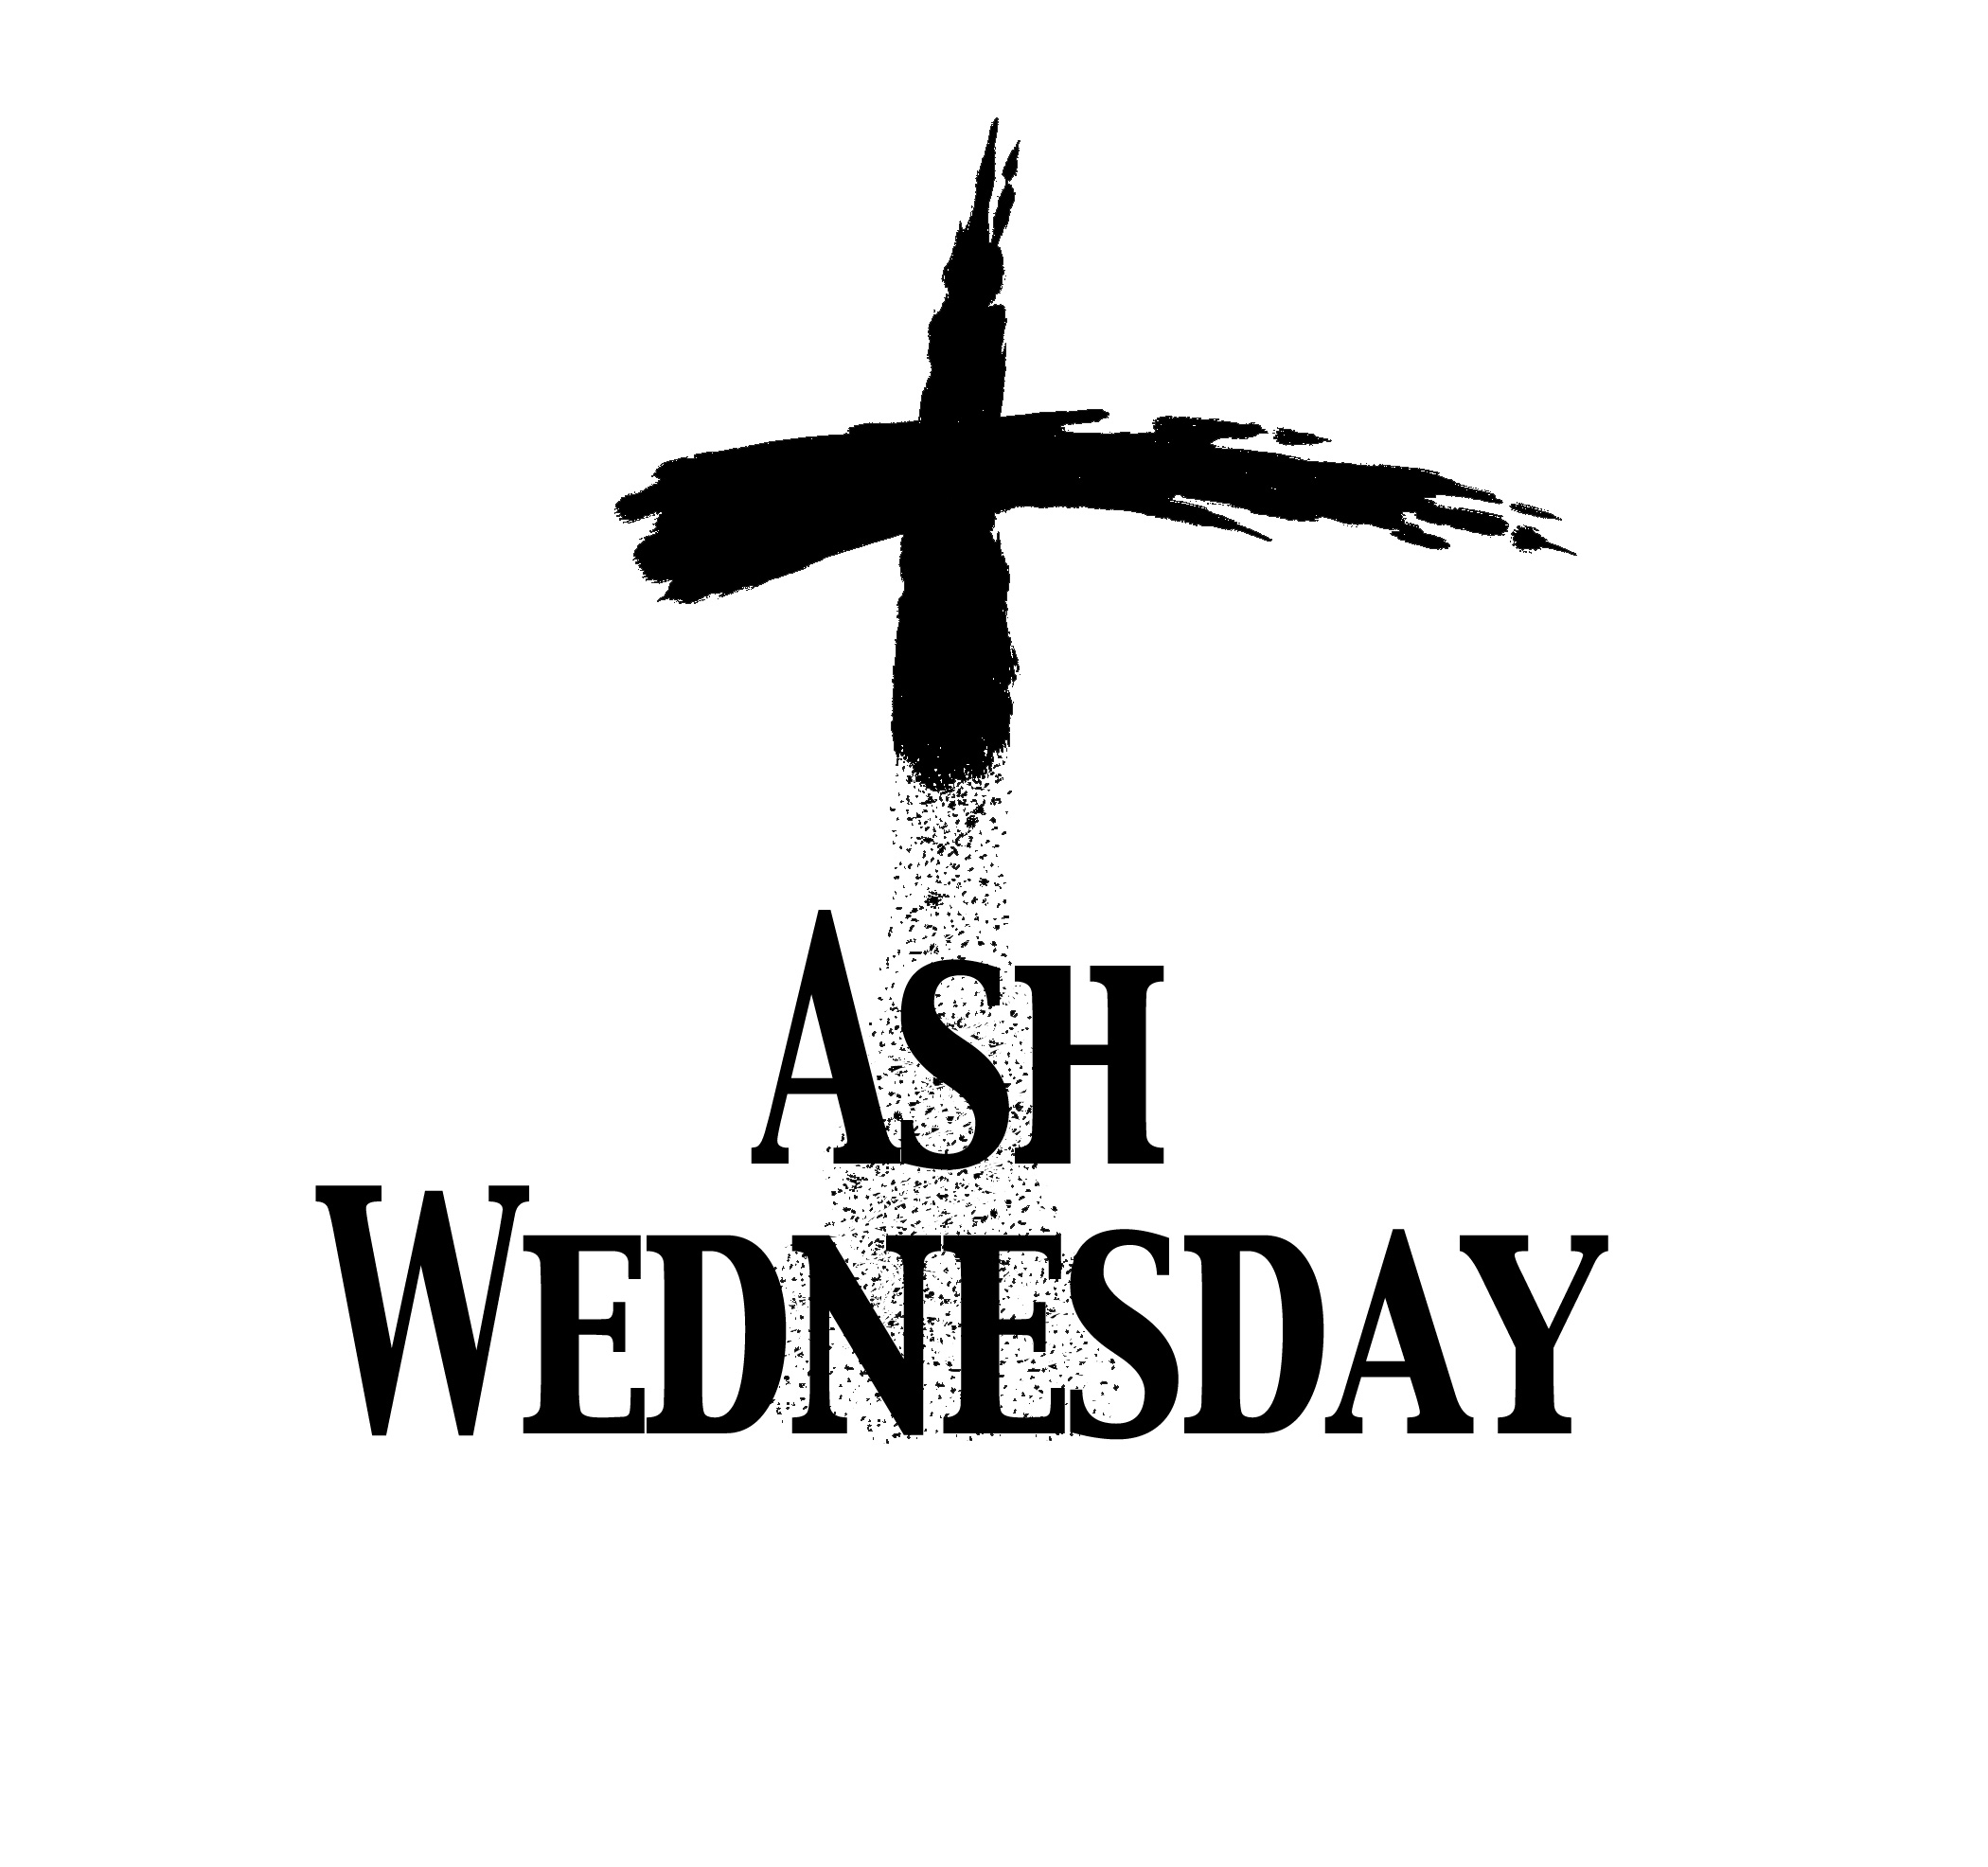 Ash wednesday a beautiful day st georges anglican church ash wednesday buycottarizona